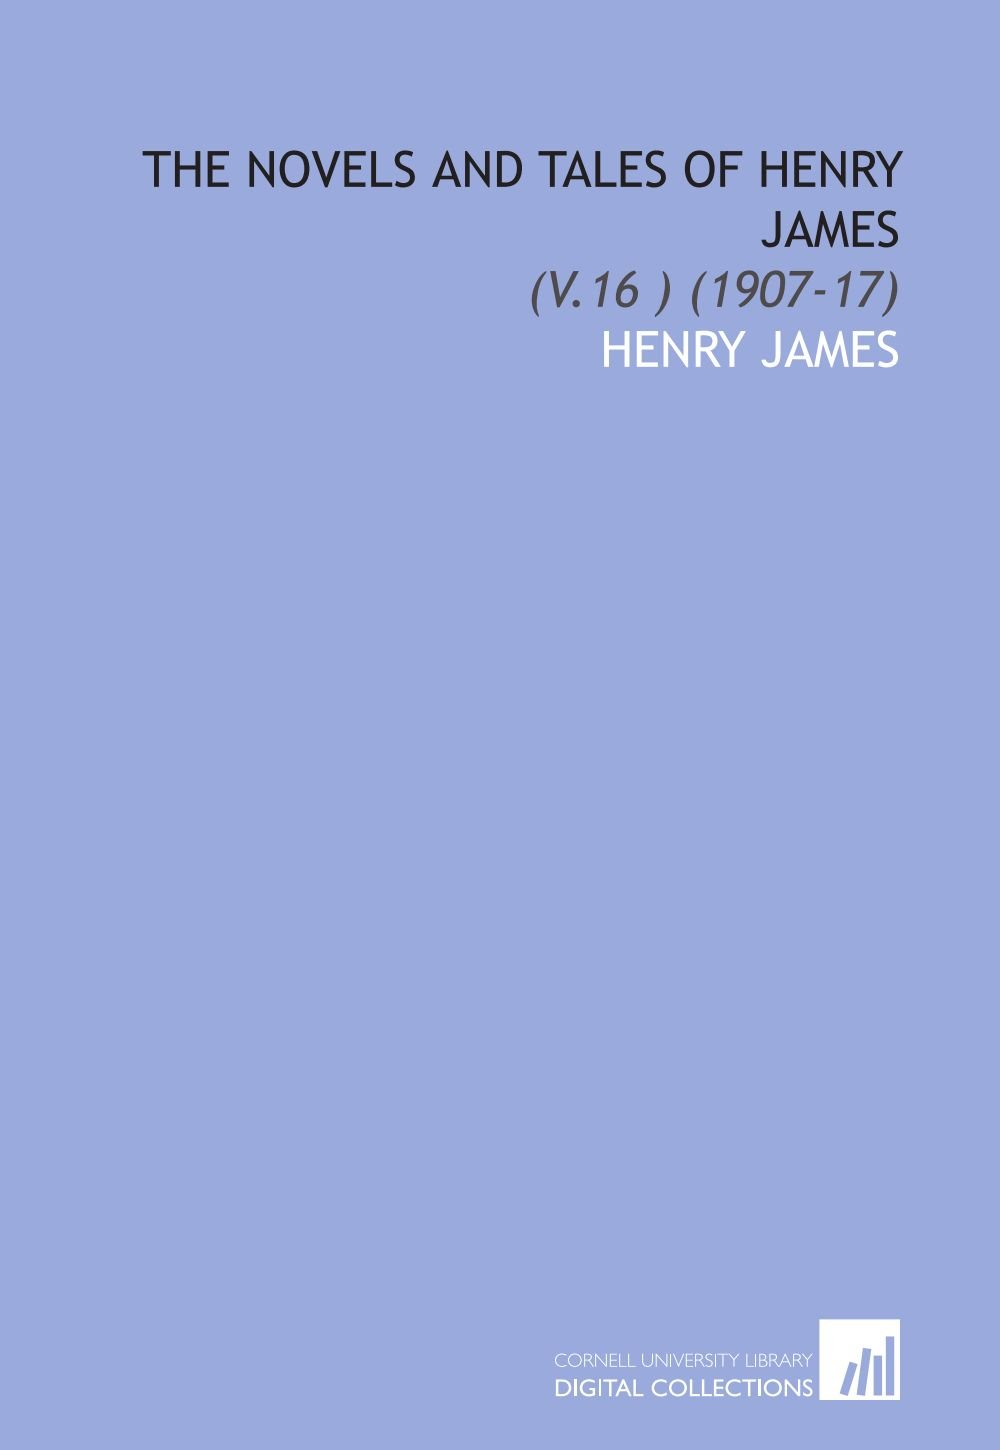 The Novels and Tales of Henry James: (V.16 ) (1907-17) pdf